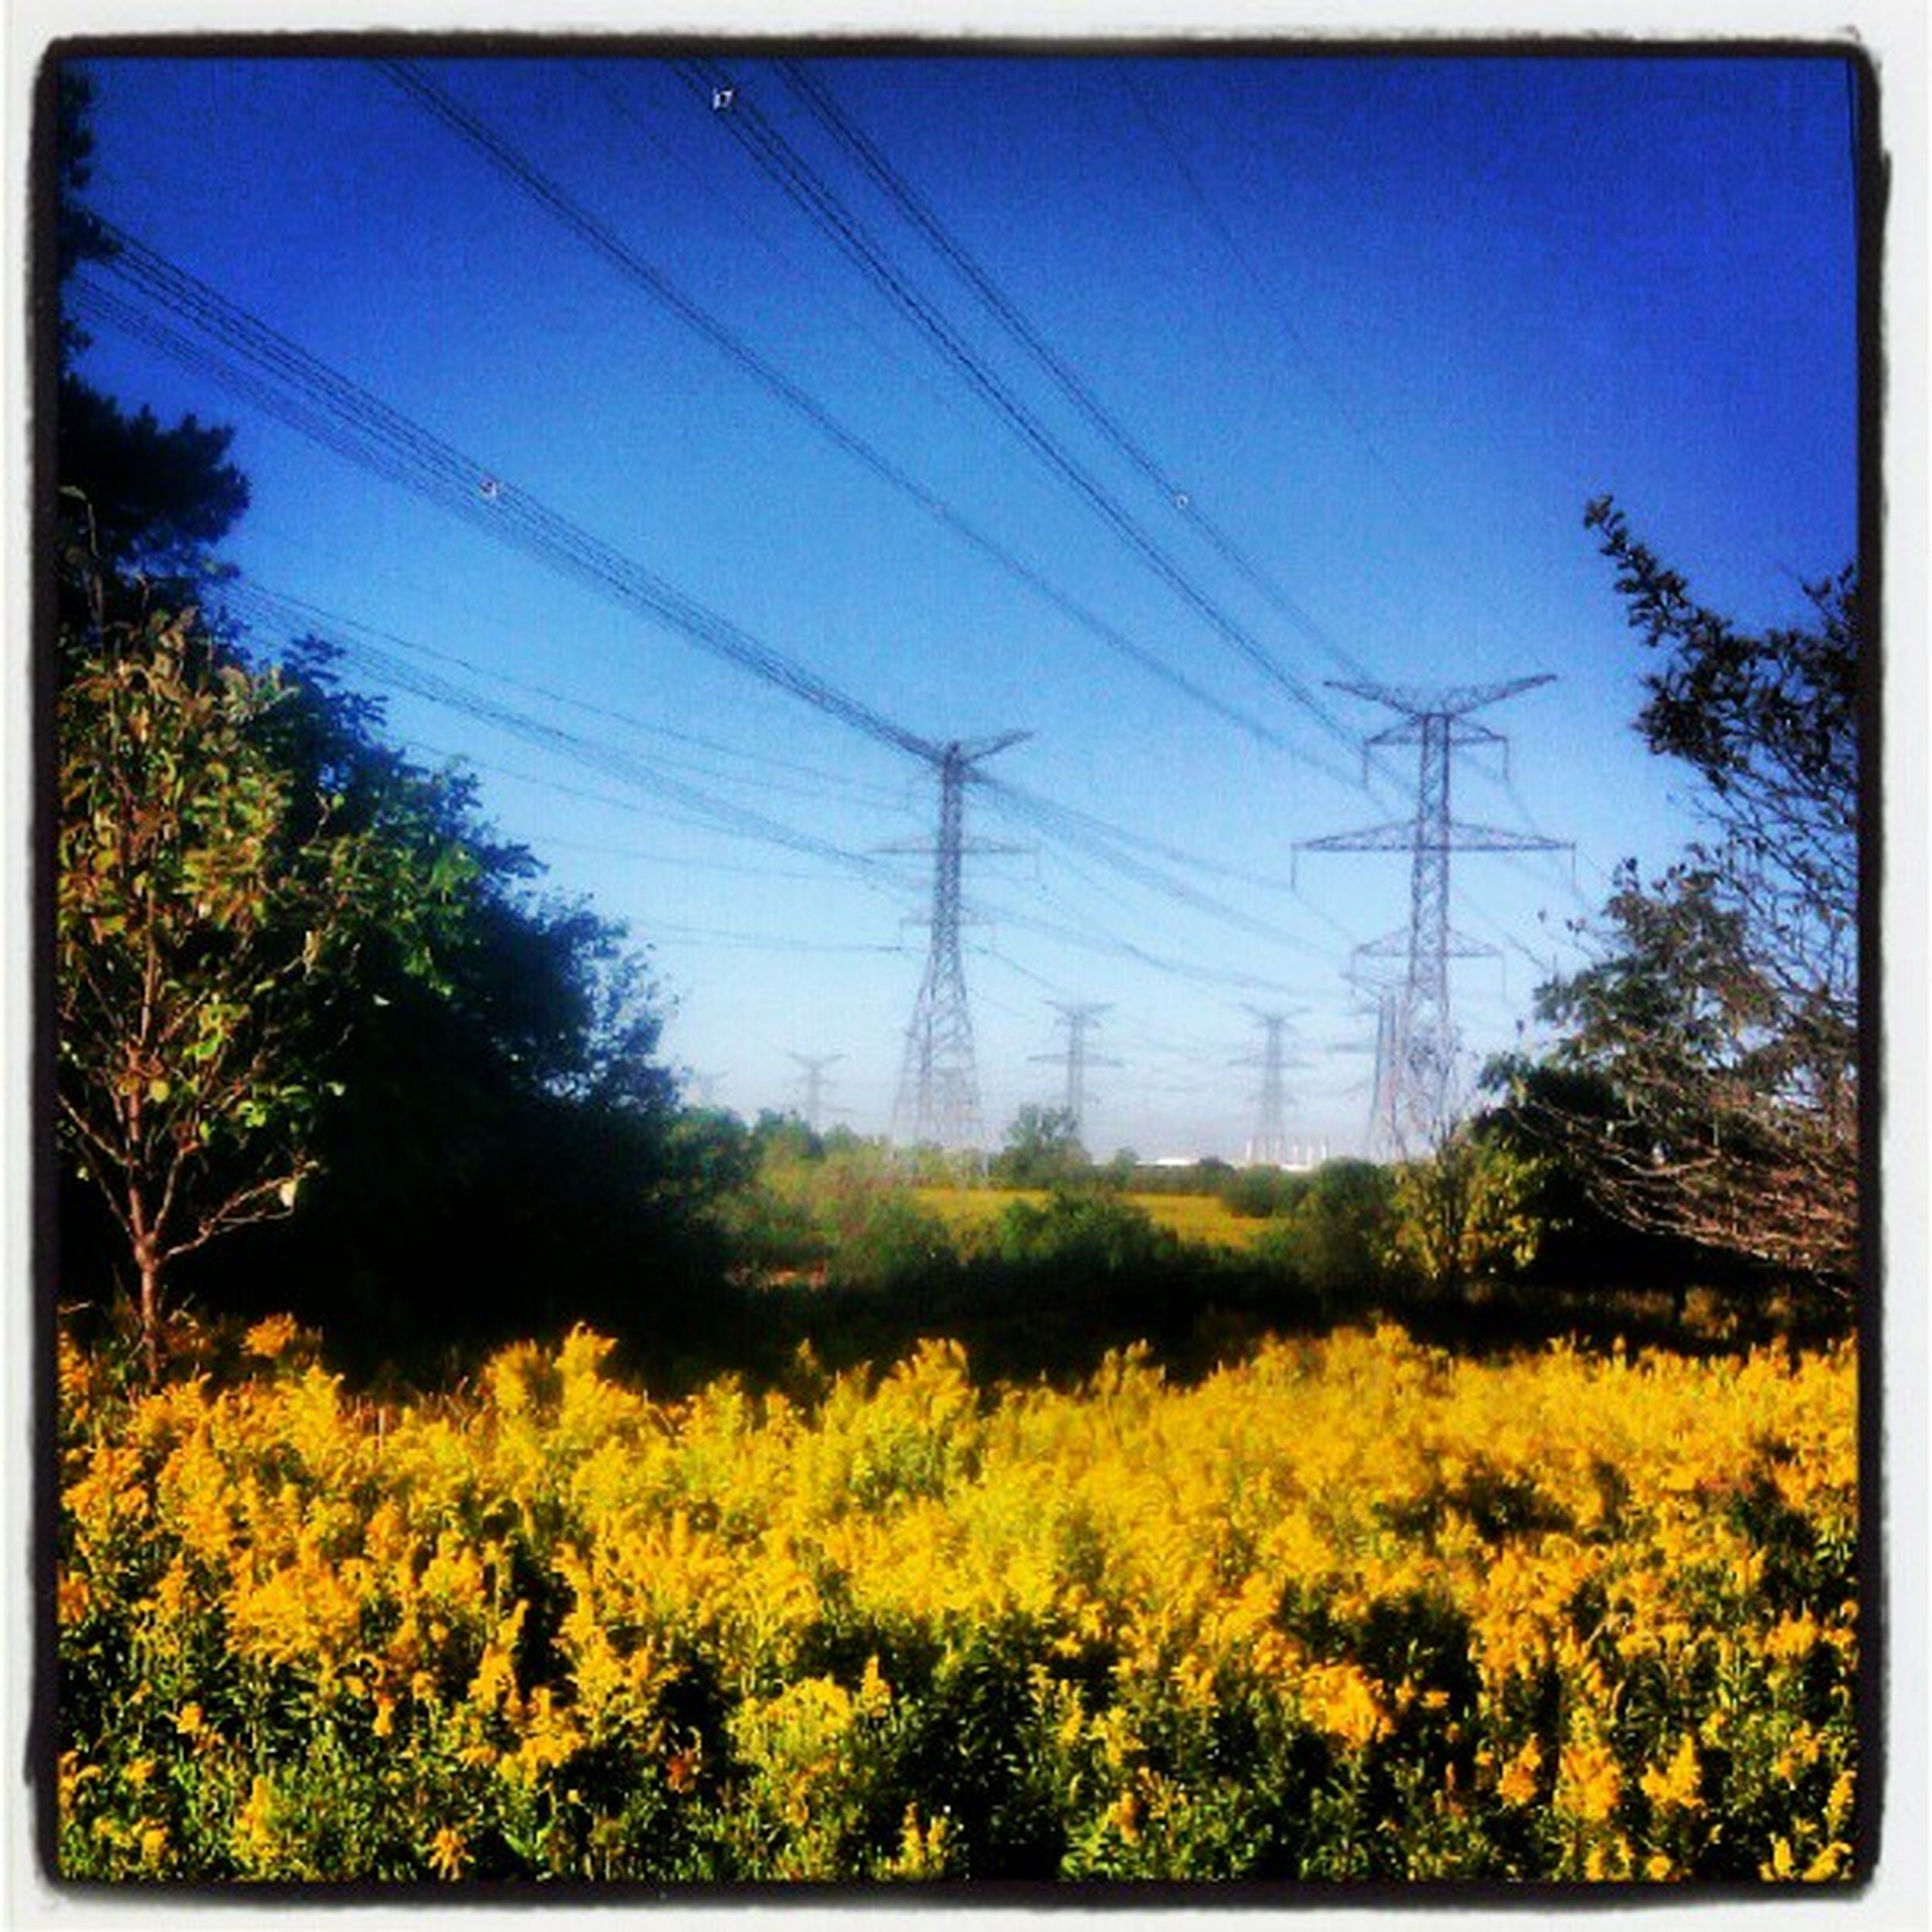 Morning drive to work. Scenery Nature Nature Photography Nature_collection Hydro Power Hydroline Flowers Yellow Flower Yellow Flowers